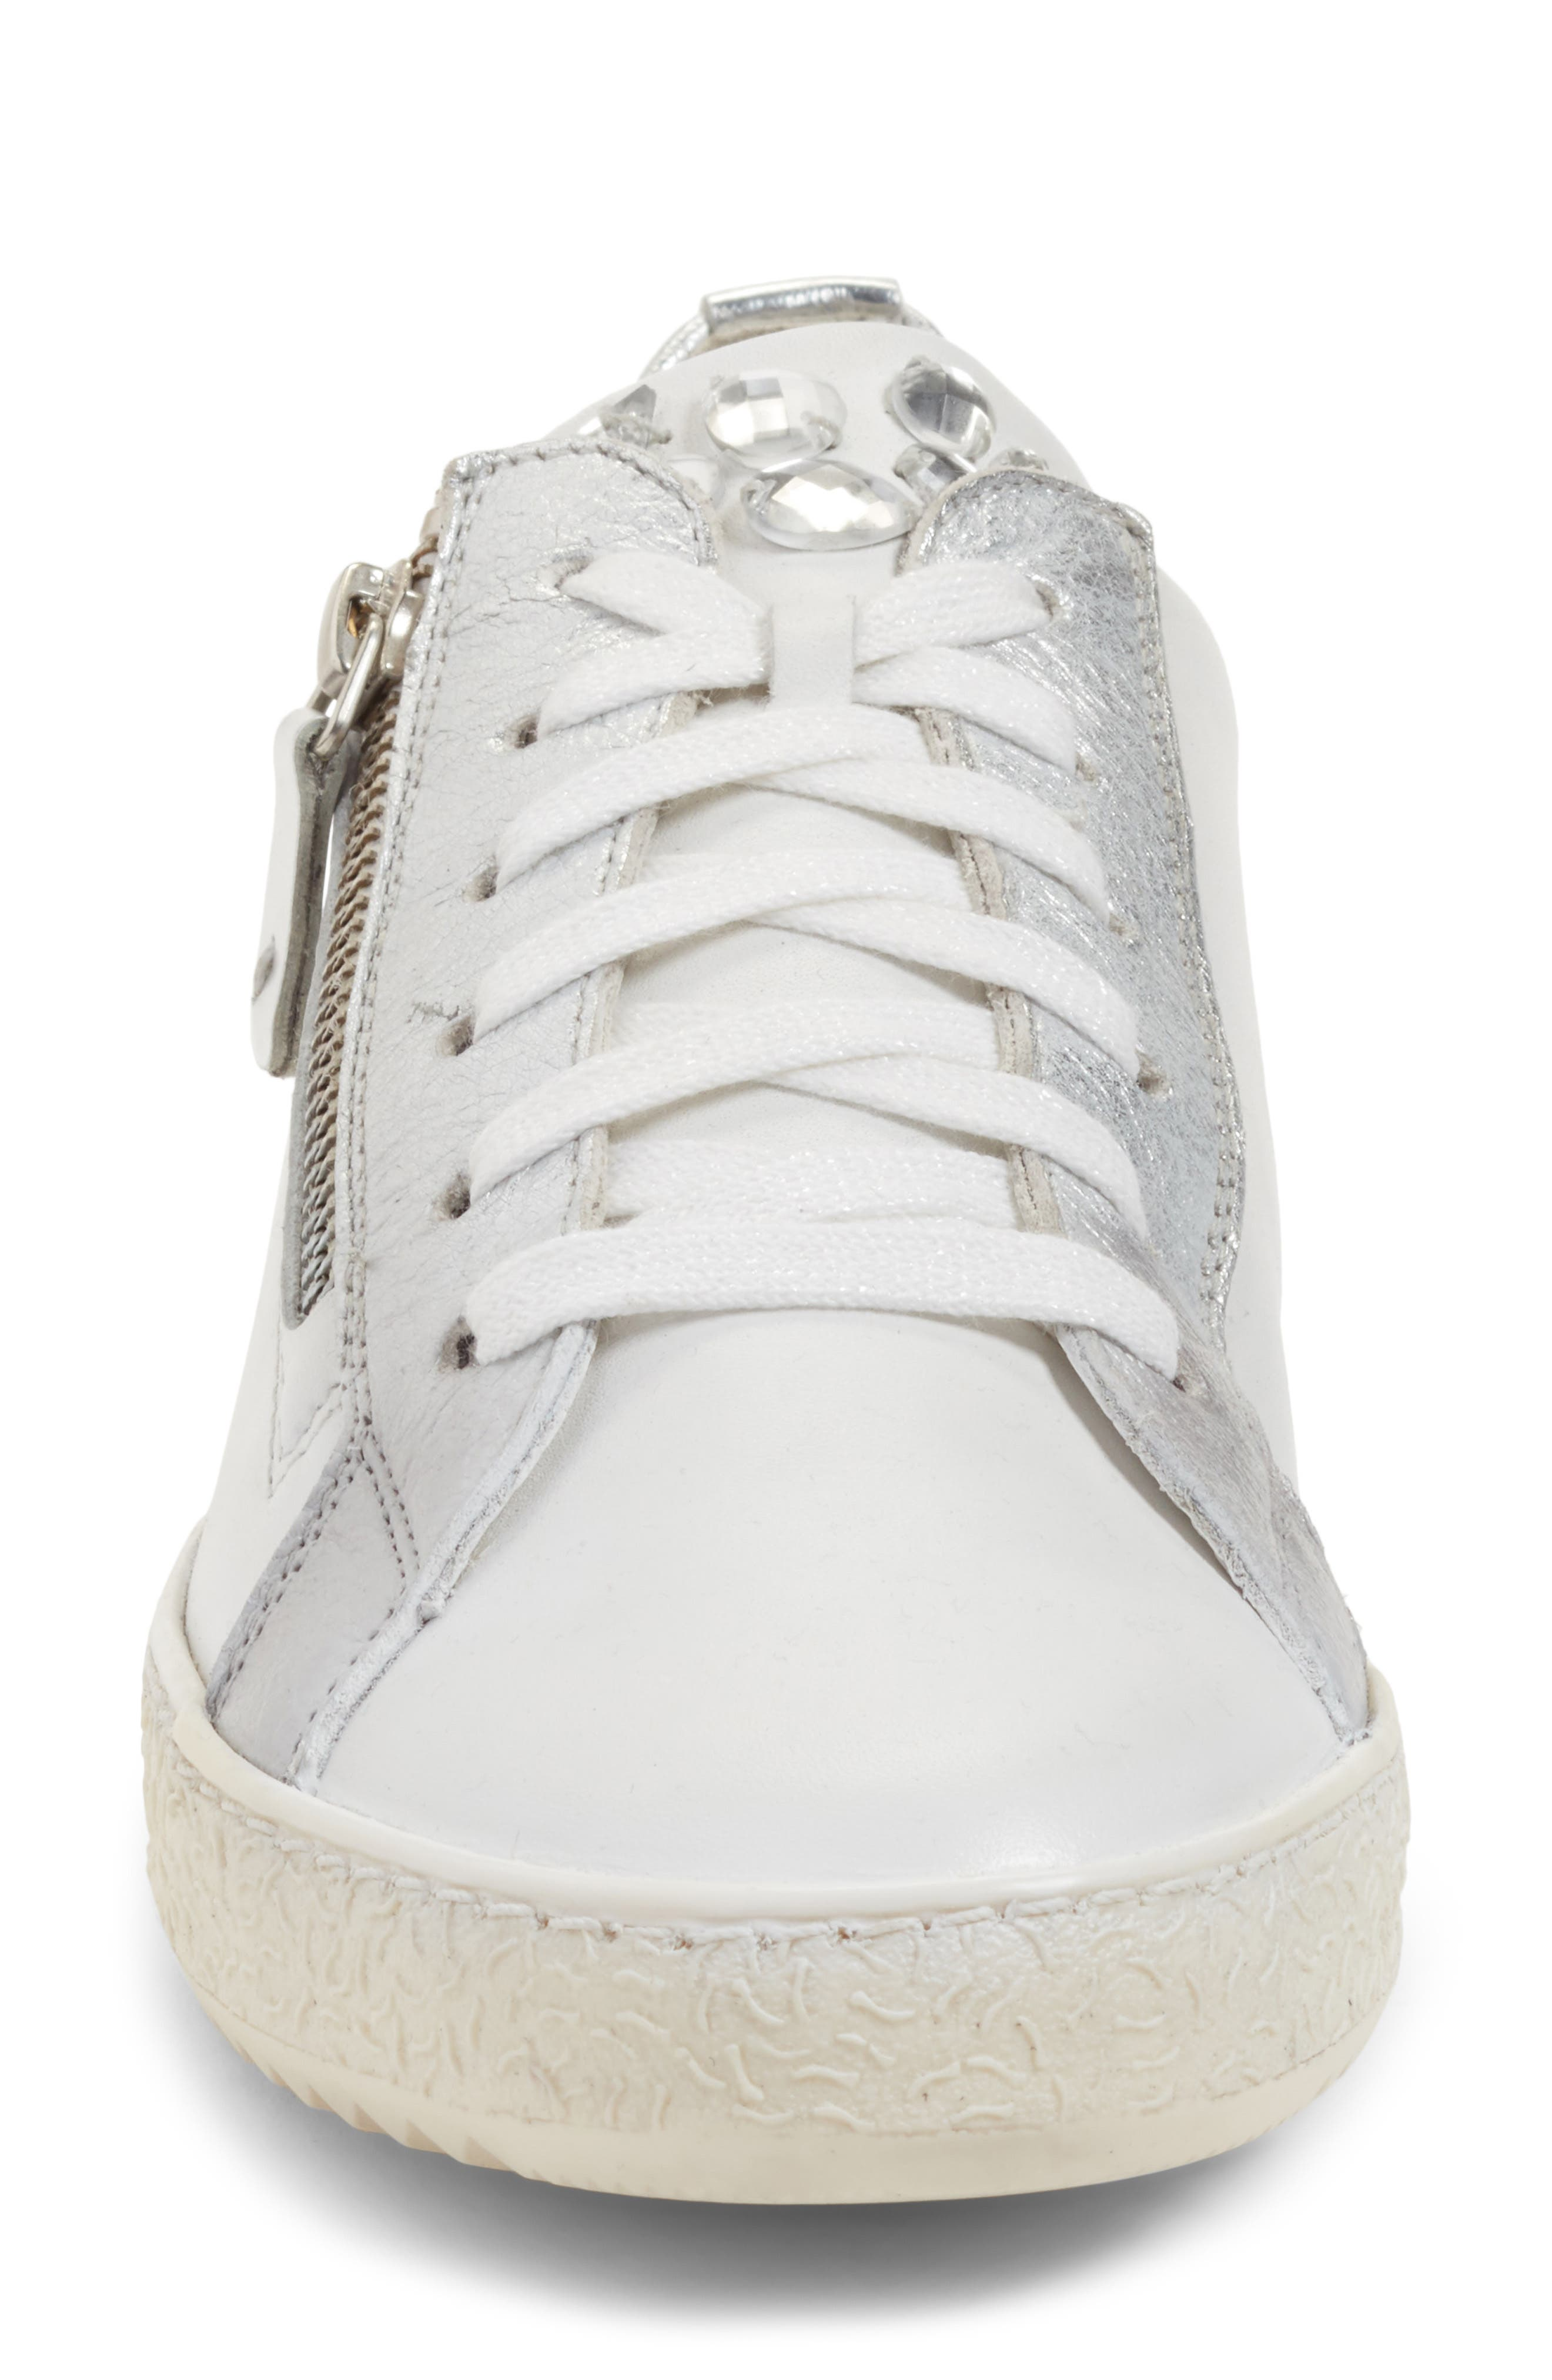 Minnie Sneaker,                             Alternate thumbnail 5, color,                             White/ Silver Leather